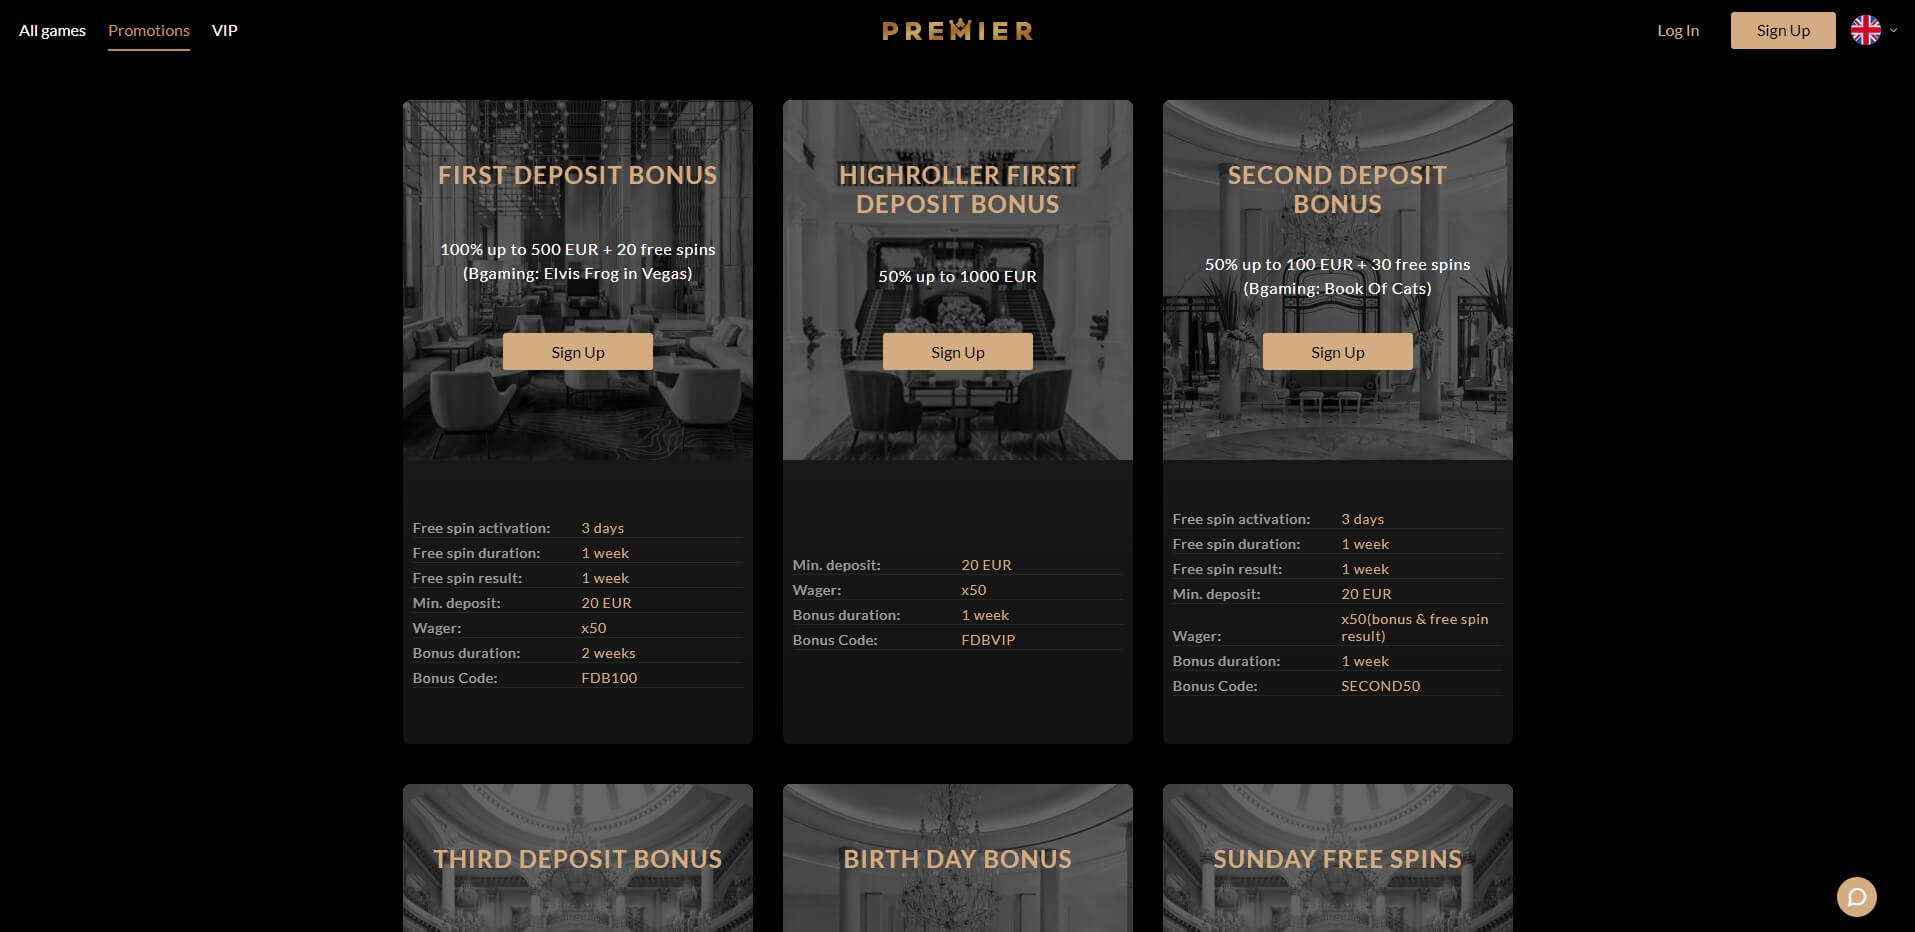 Promotions at Premier Casino